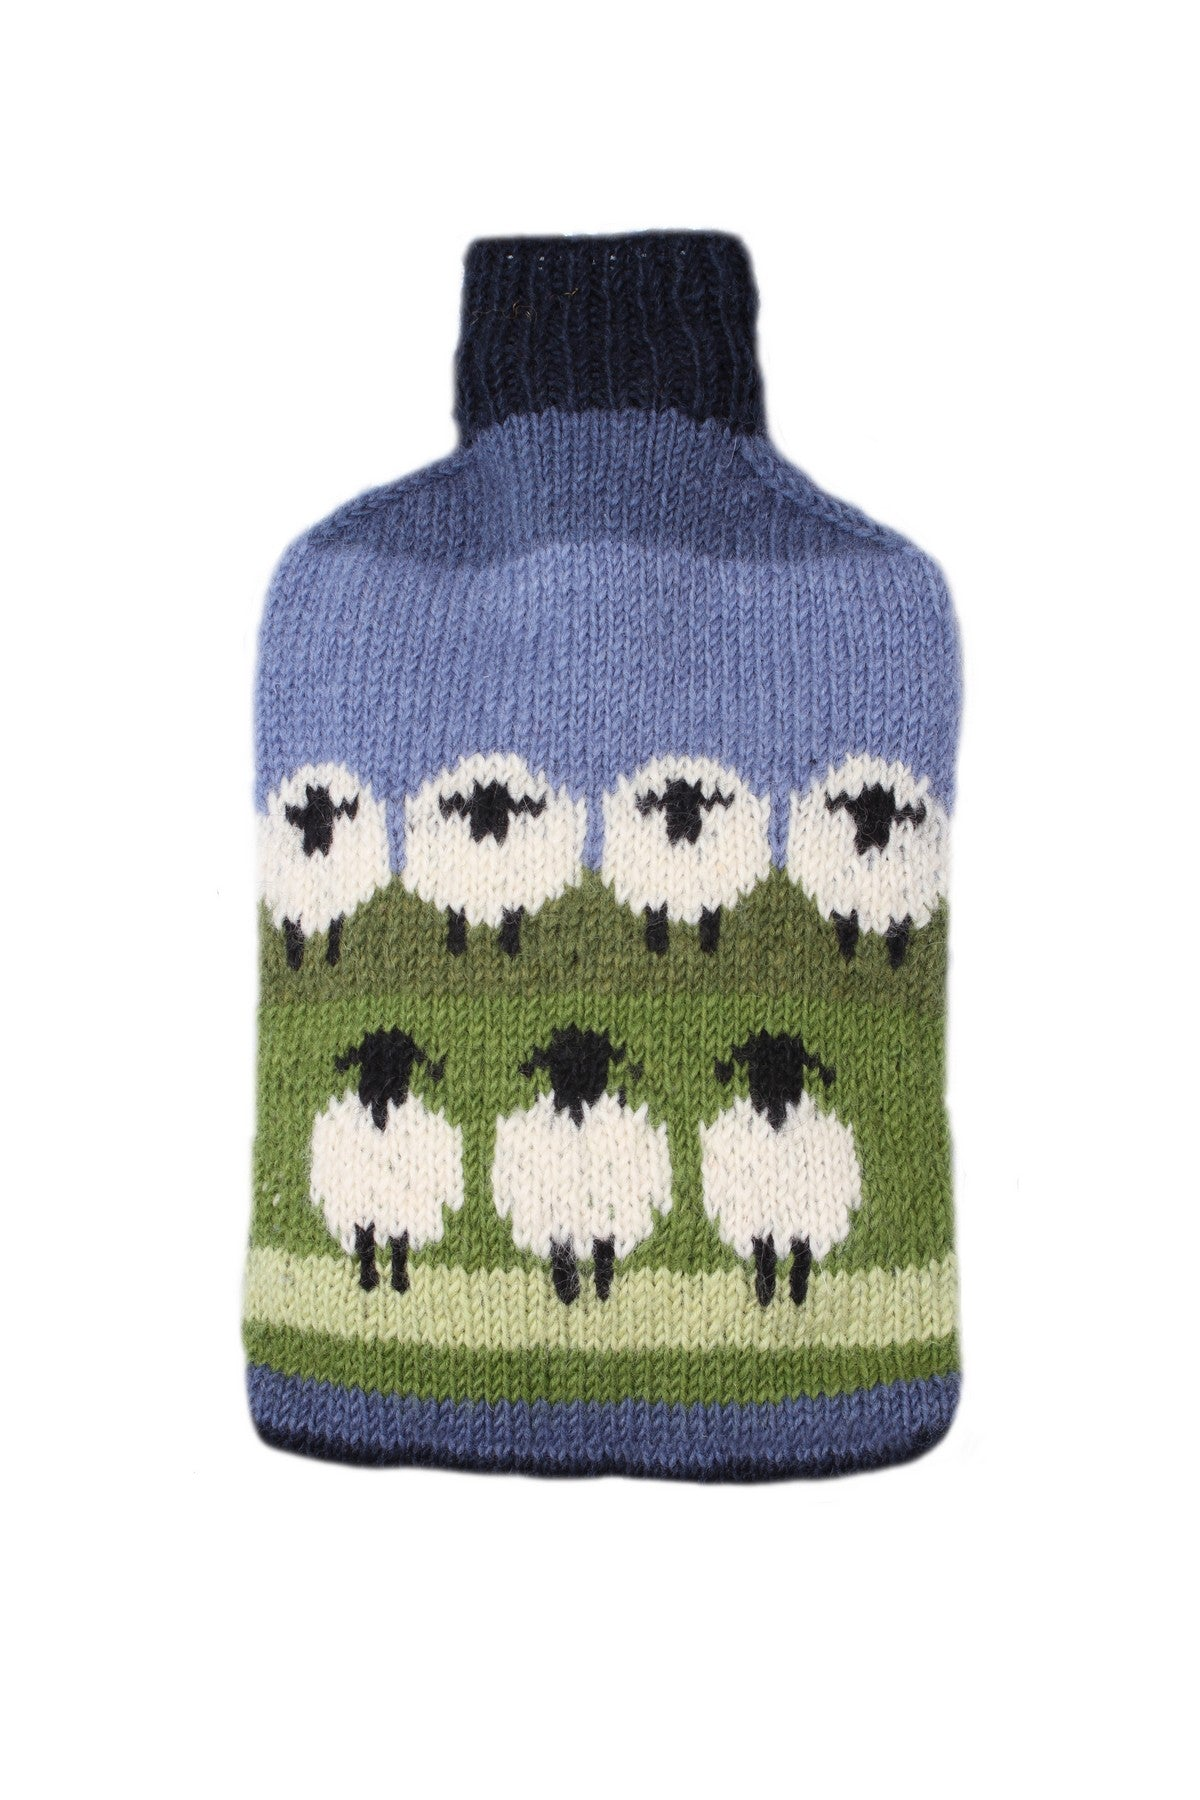 Hot Water Bottle - Sheep